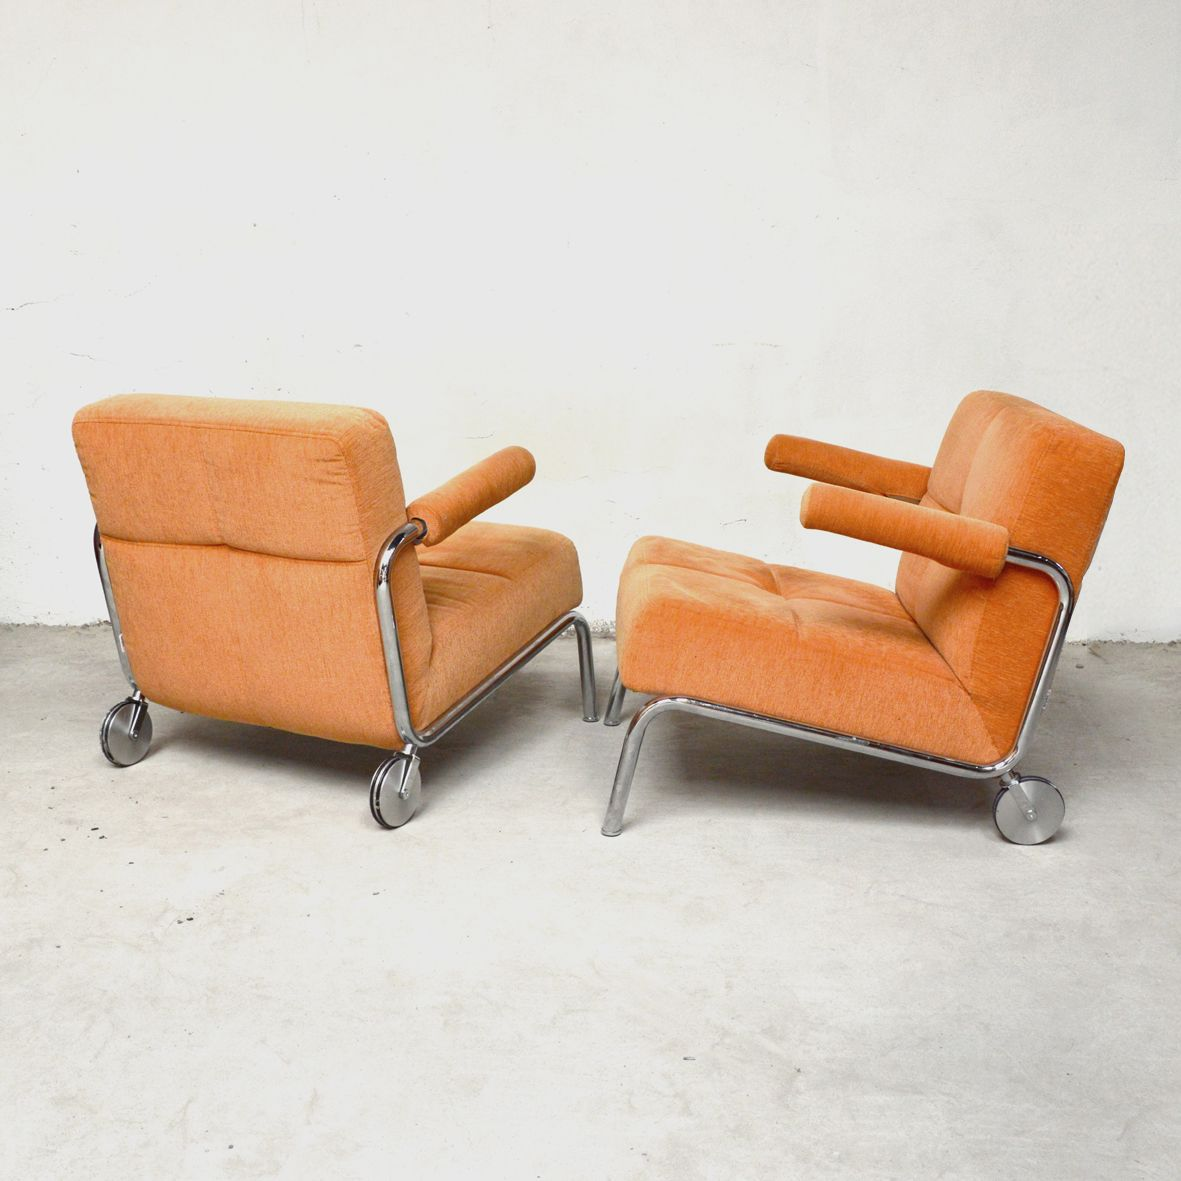 armchairs from br hl 1980s set of 2 for sale at pamono. Black Bedroom Furniture Sets. Home Design Ideas